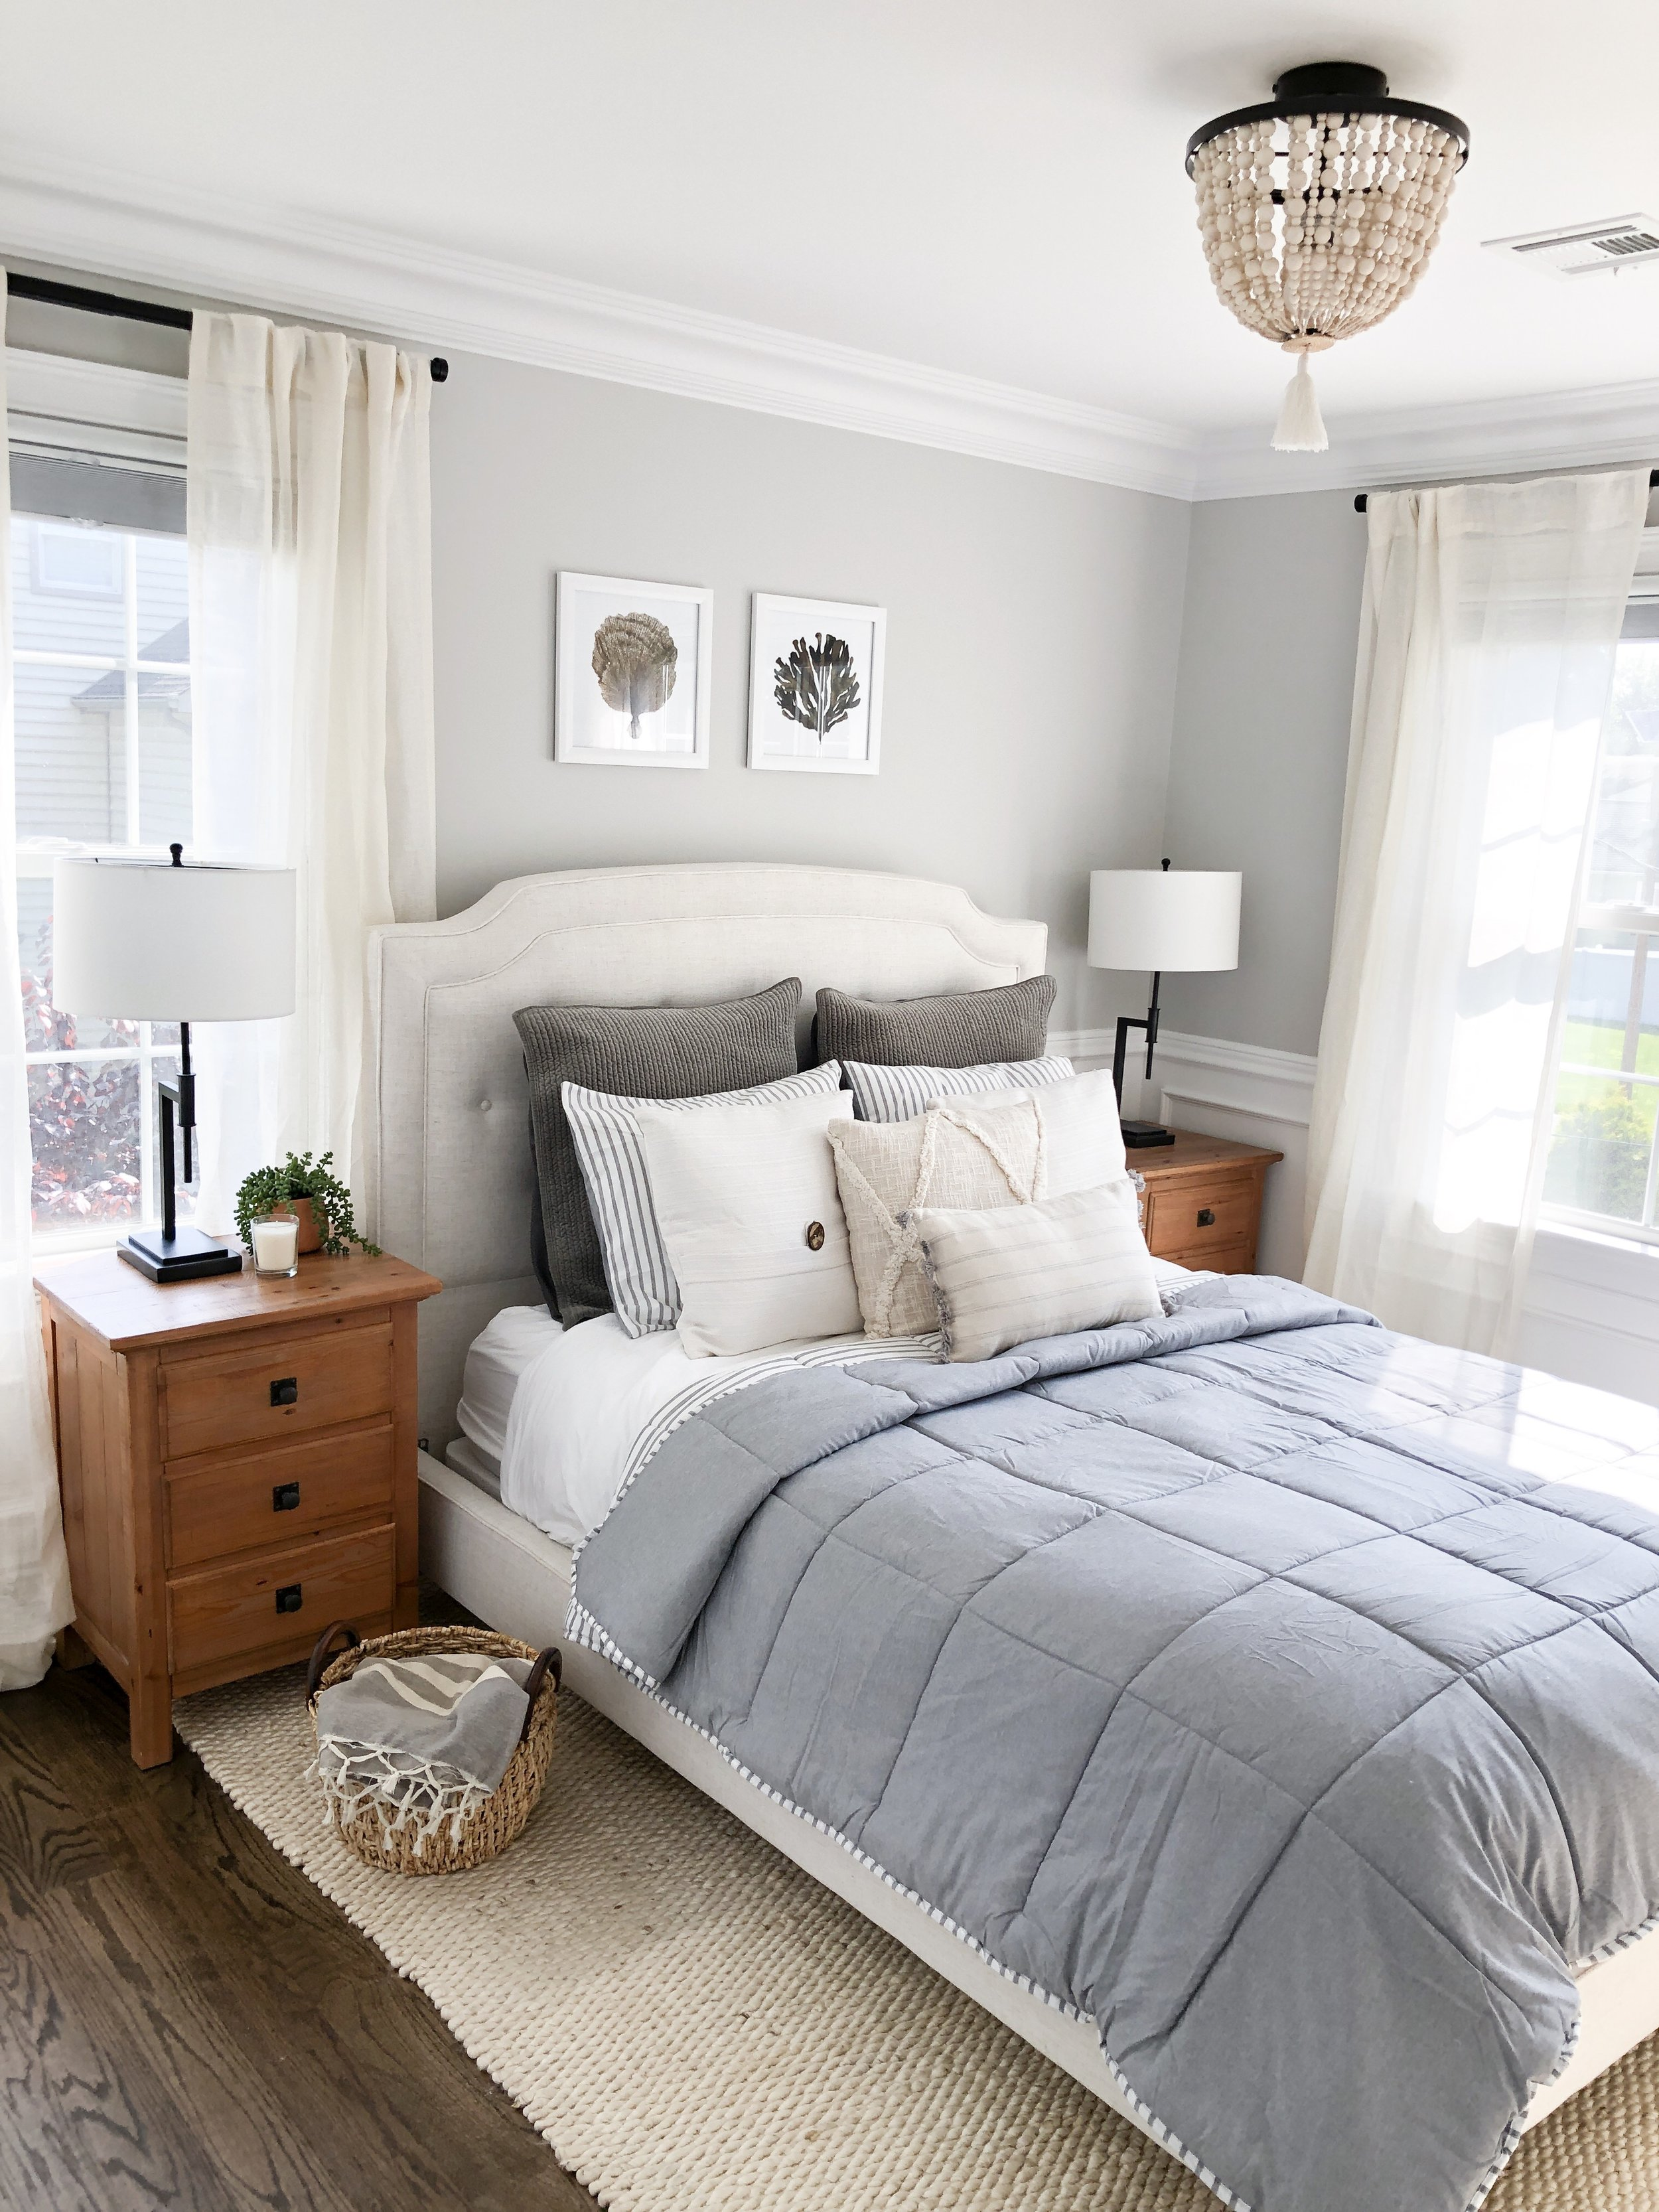 A look at our updated guest room!